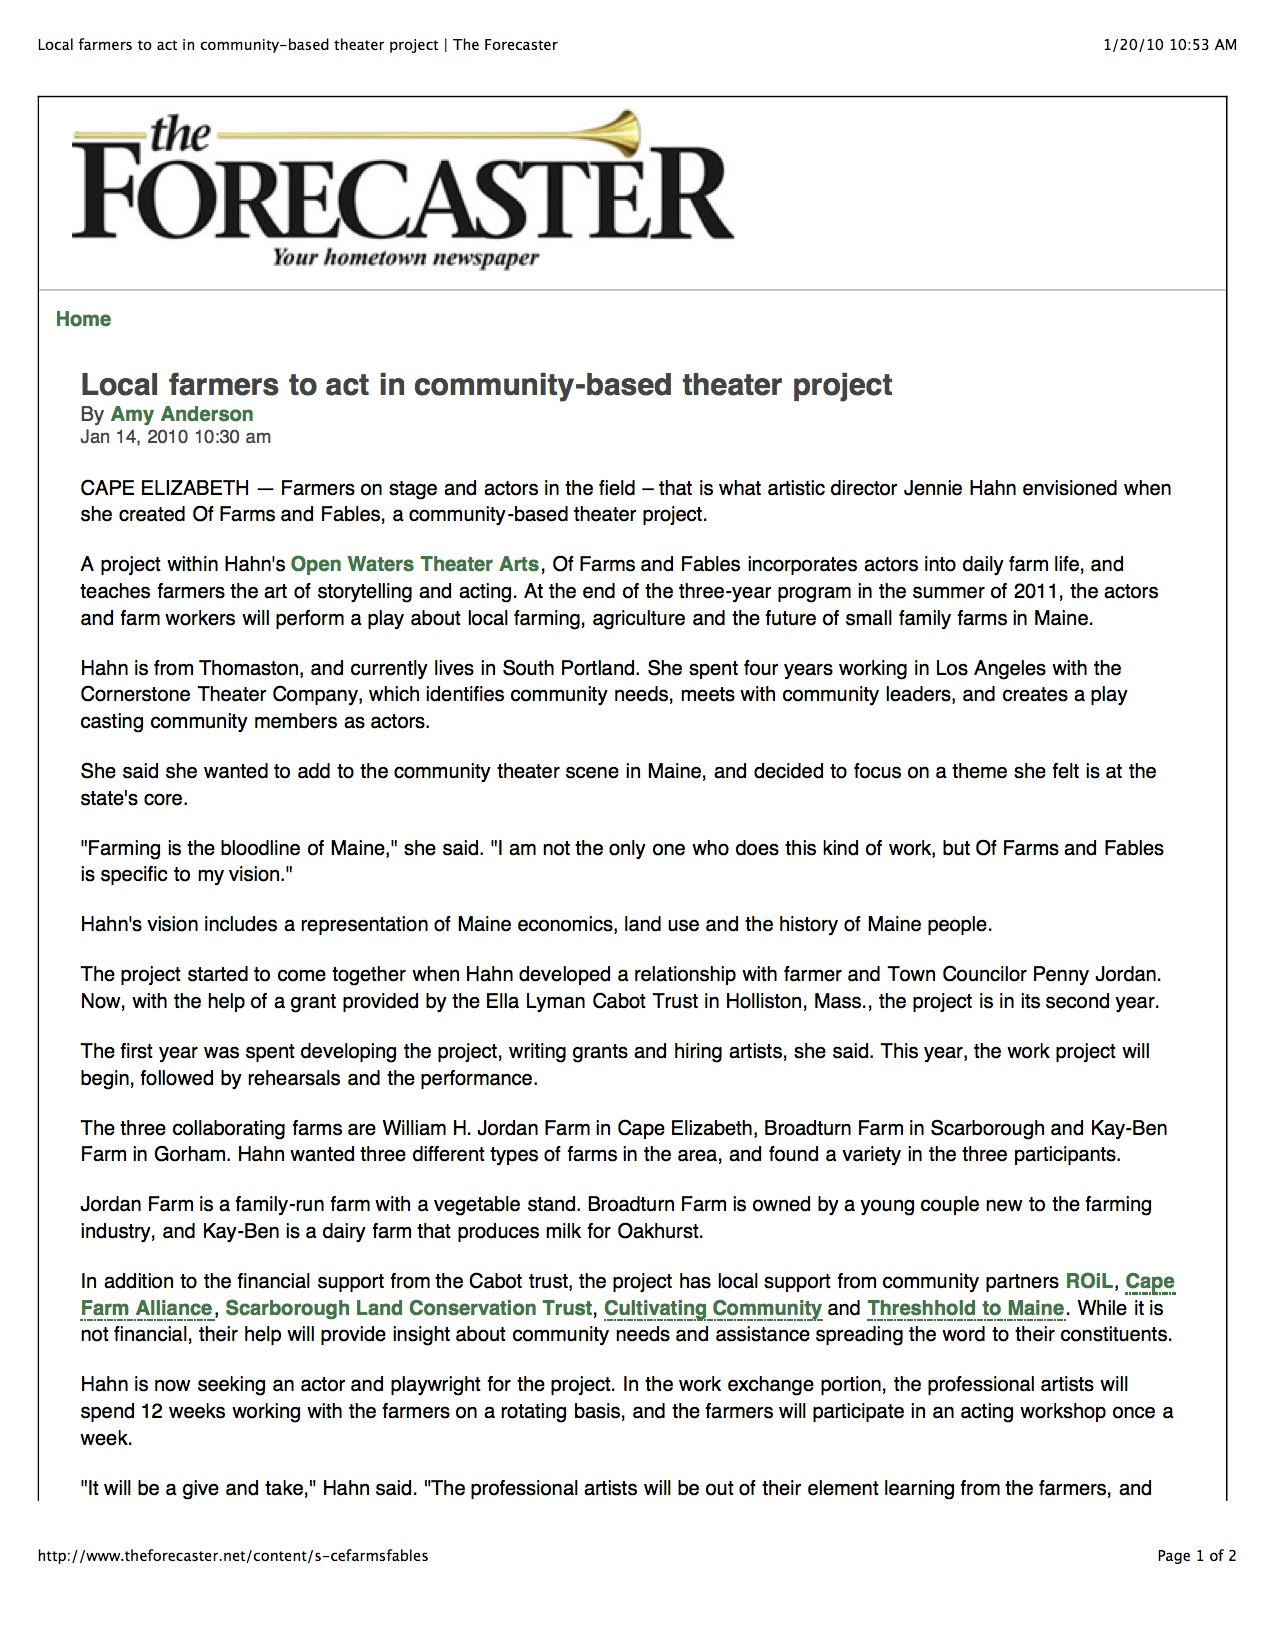 Local farmers to act in community-based theater project   The Forecaster.jpg